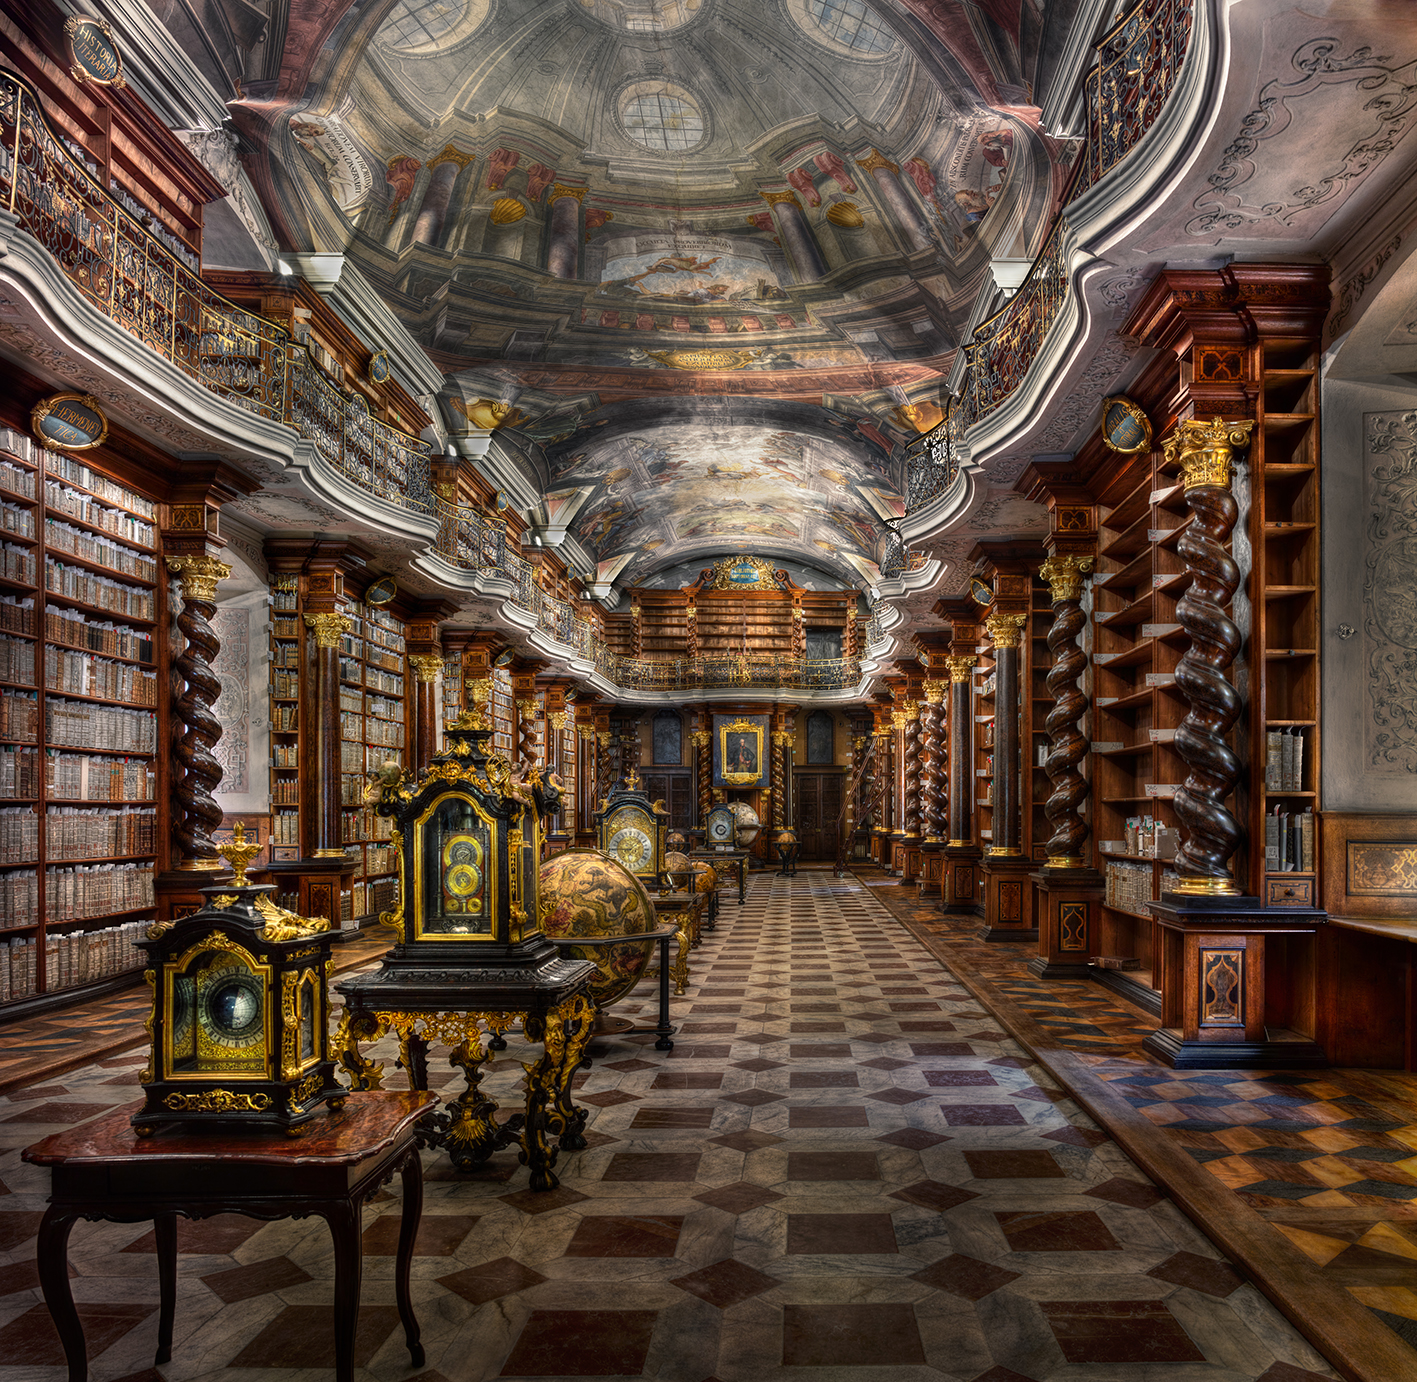 Christian Voigt,  Baroque Library Hall  -  Clementinium , Prague Series, 74 x 75 inches (188 x 192 cm), 2015, edition of 12. Courtesy of UNIX Gallery